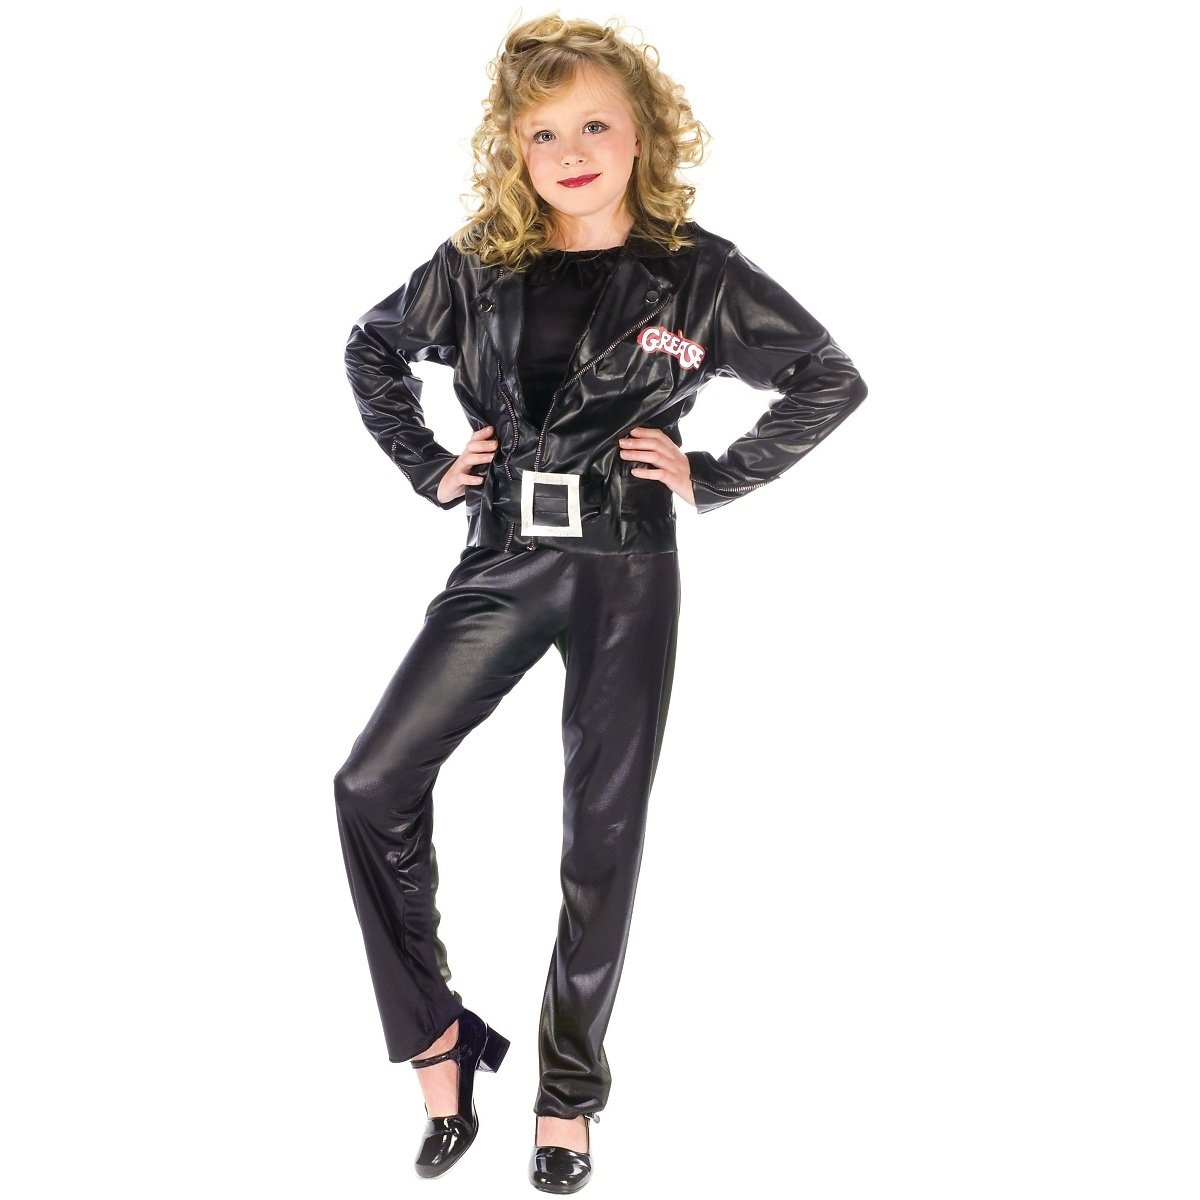 sc 1 st  Amazon.com & Amazon.com: Grease Cool Sandy Child Child Costume - Large: Toys u0026 Games